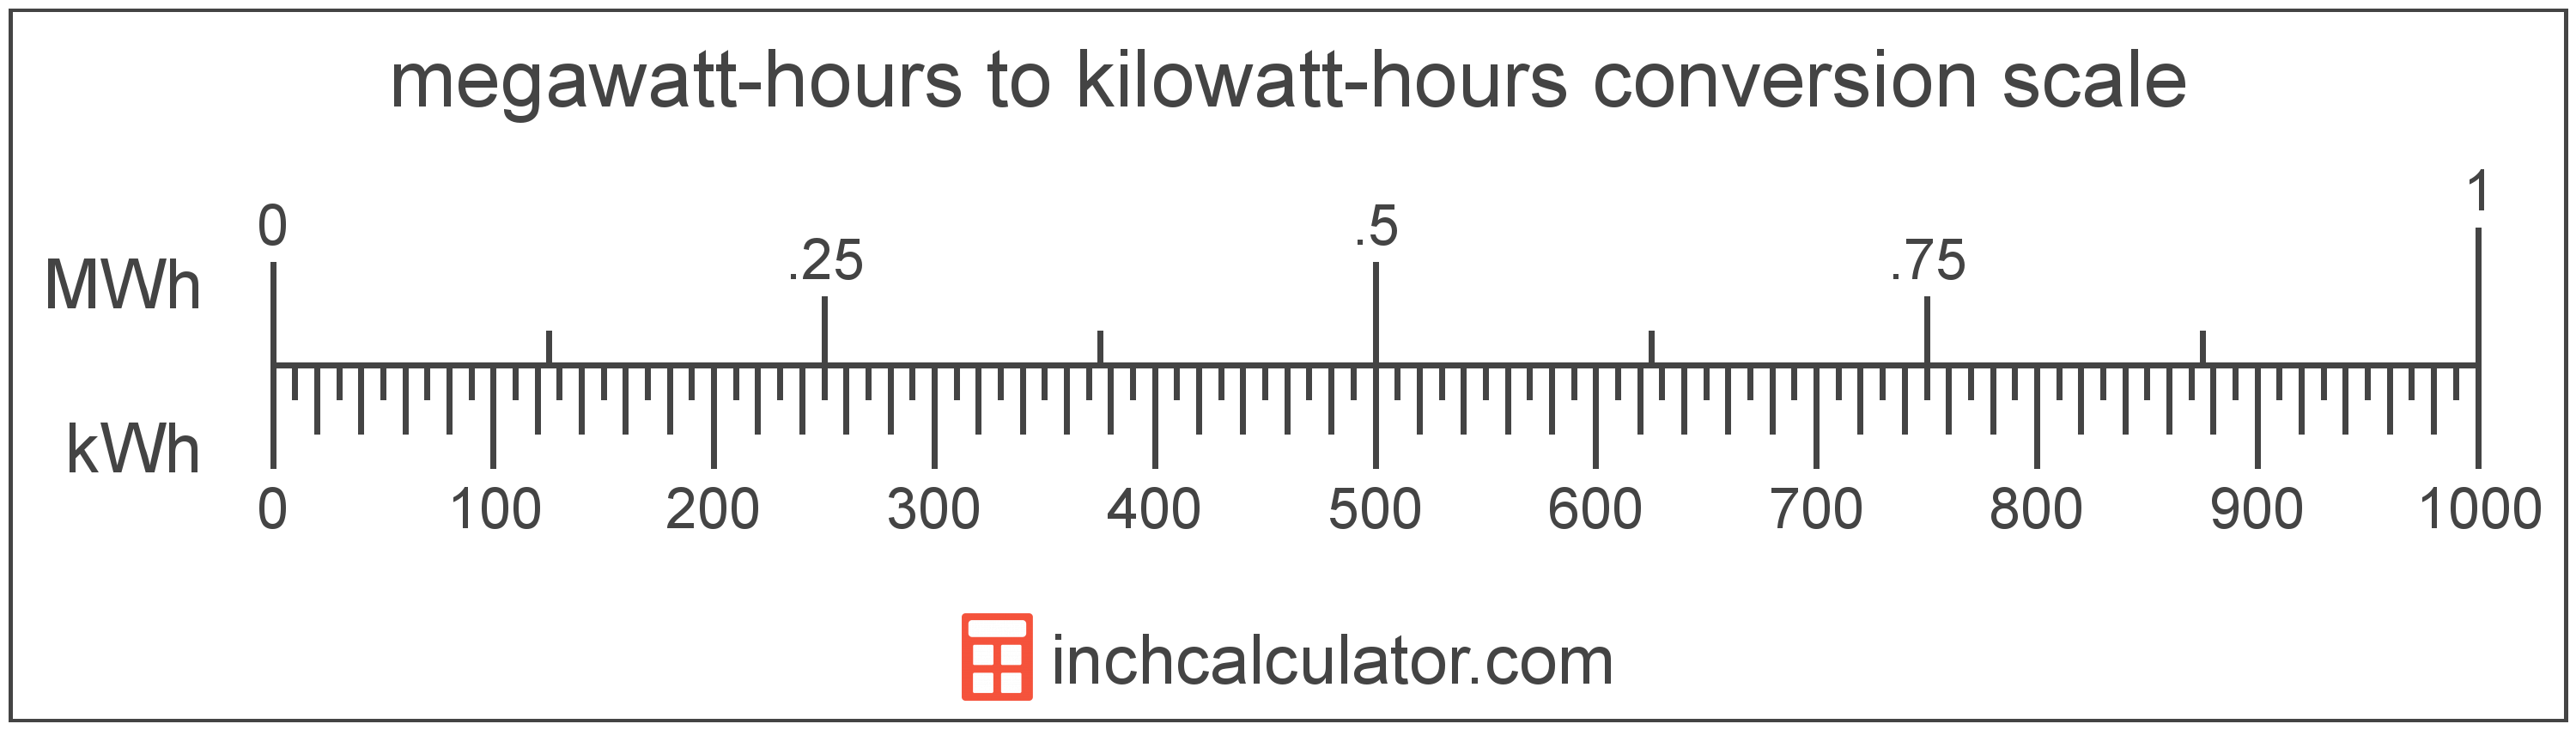 conversion scale showing kilowatt-hours and equivalent megawatt-hours energy values